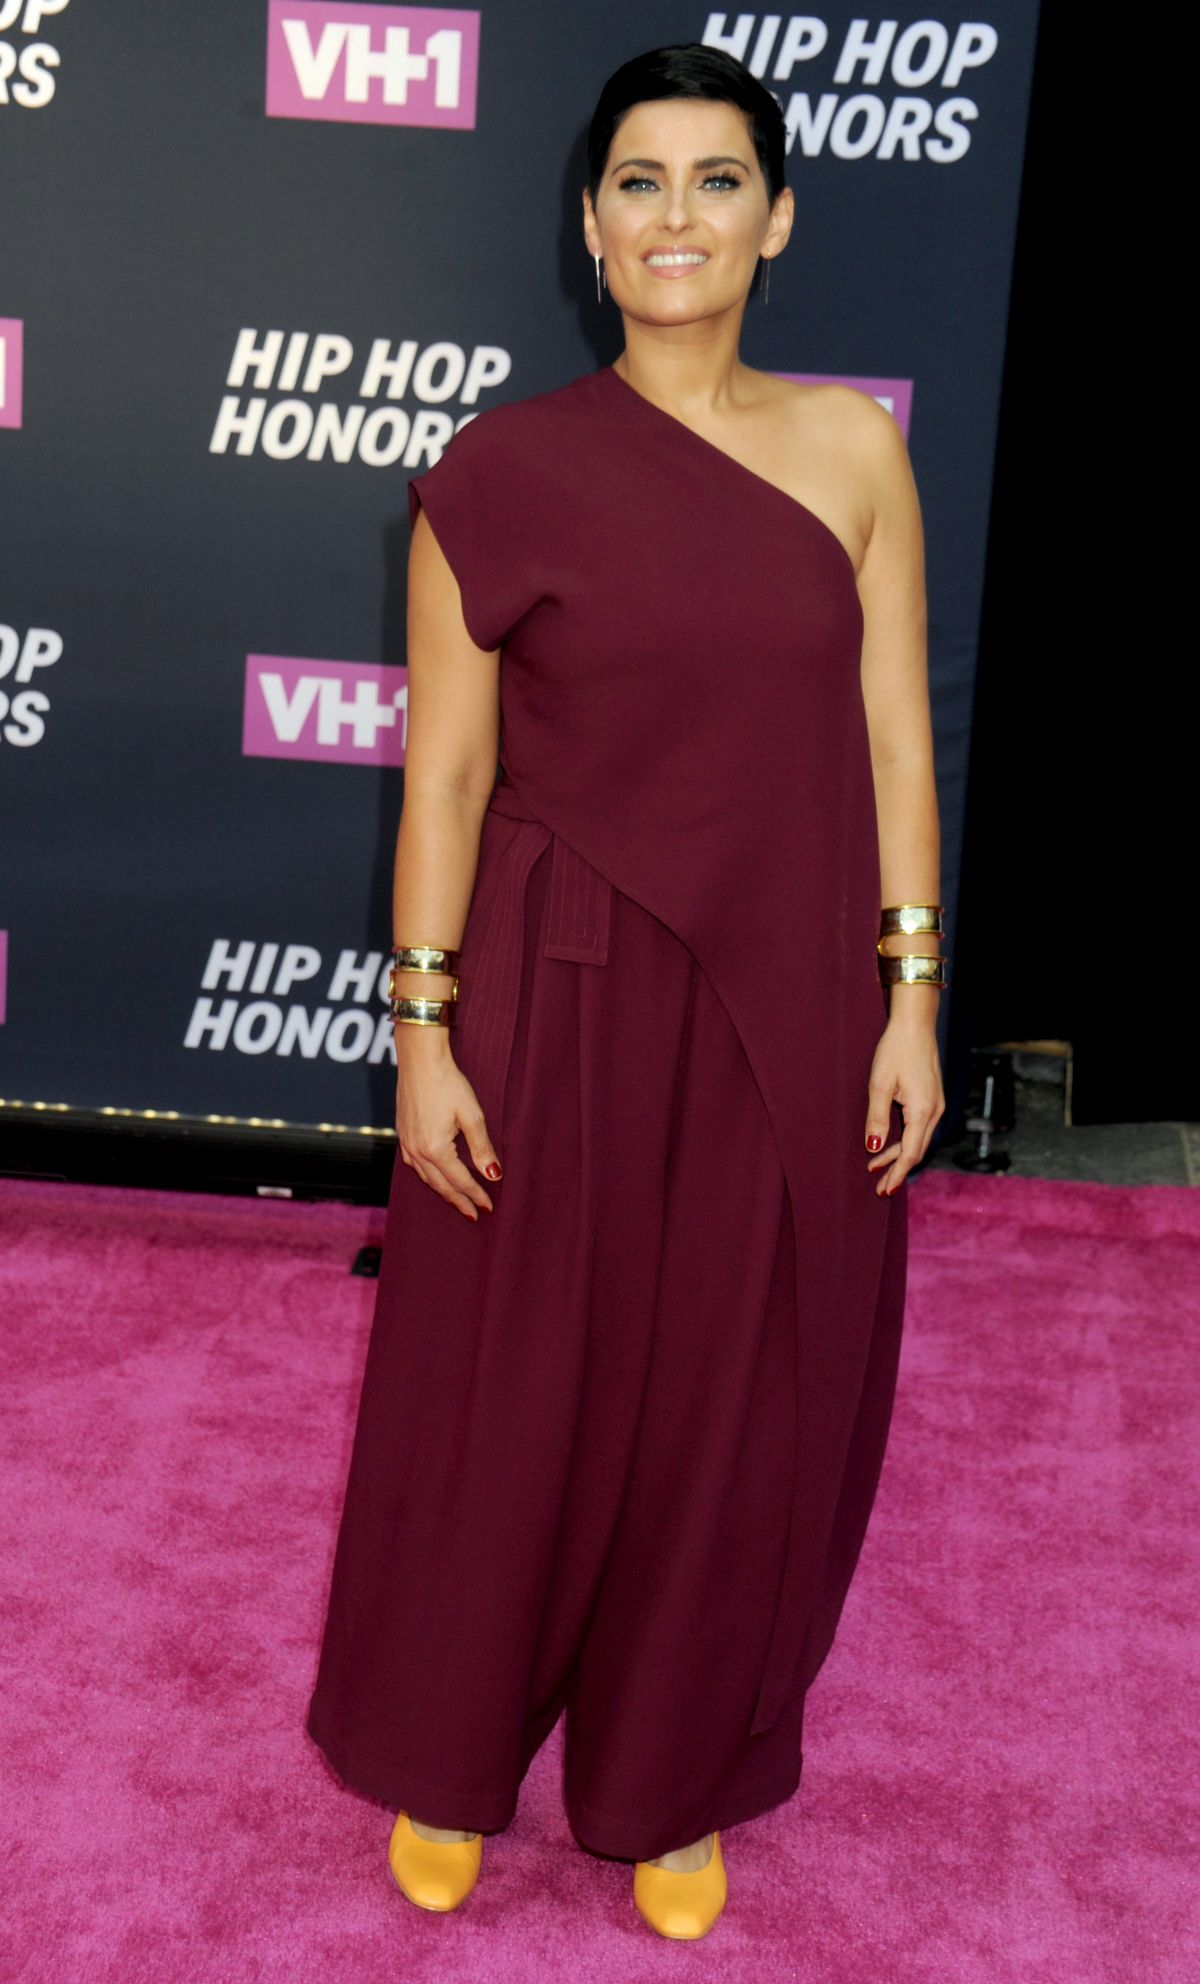 Nelly Furtado Vh Hip Hop Honors Celebrity Photo | Foto ...